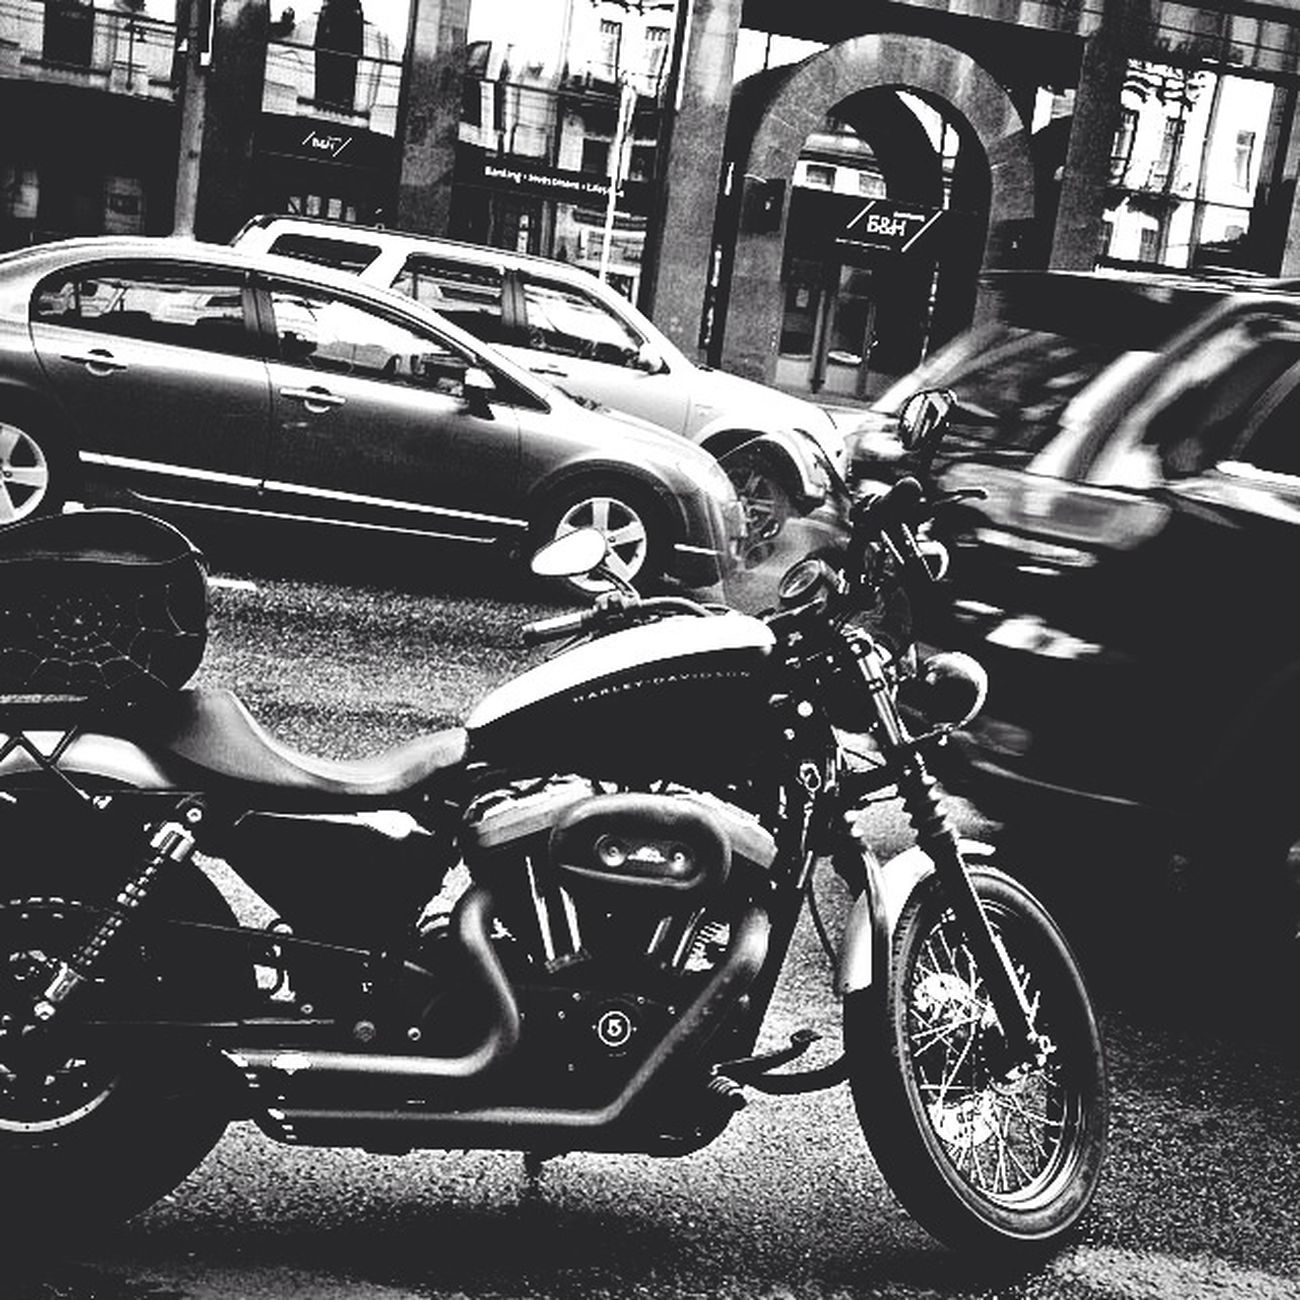 Harleydavidson Harley Davidson Harley Harley In Moscow